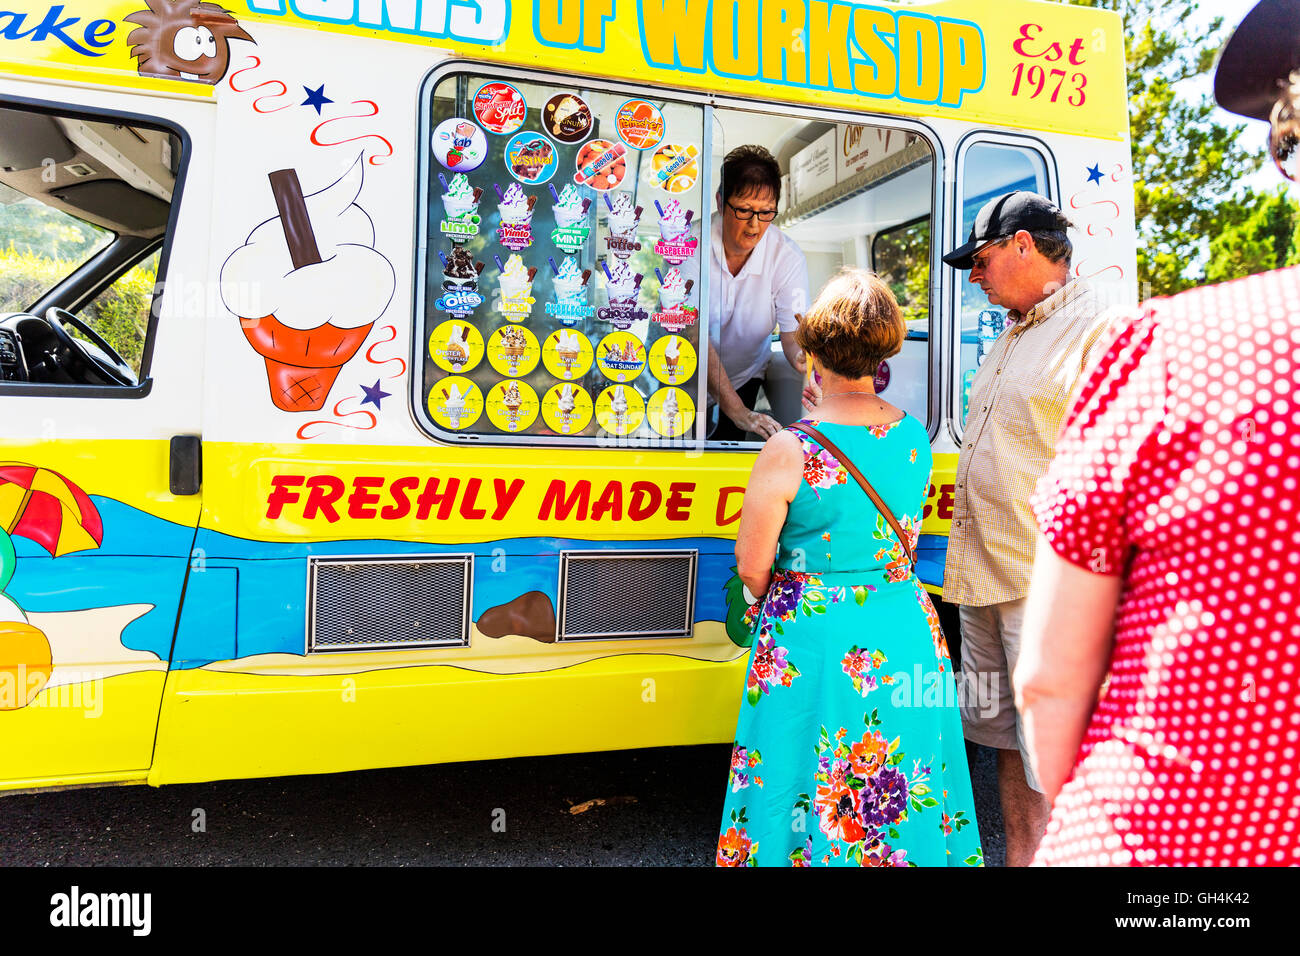 queue at ice cream van waiting for ice creams queuing serving ices lolly's in summer heat UK England GB - Stock Image